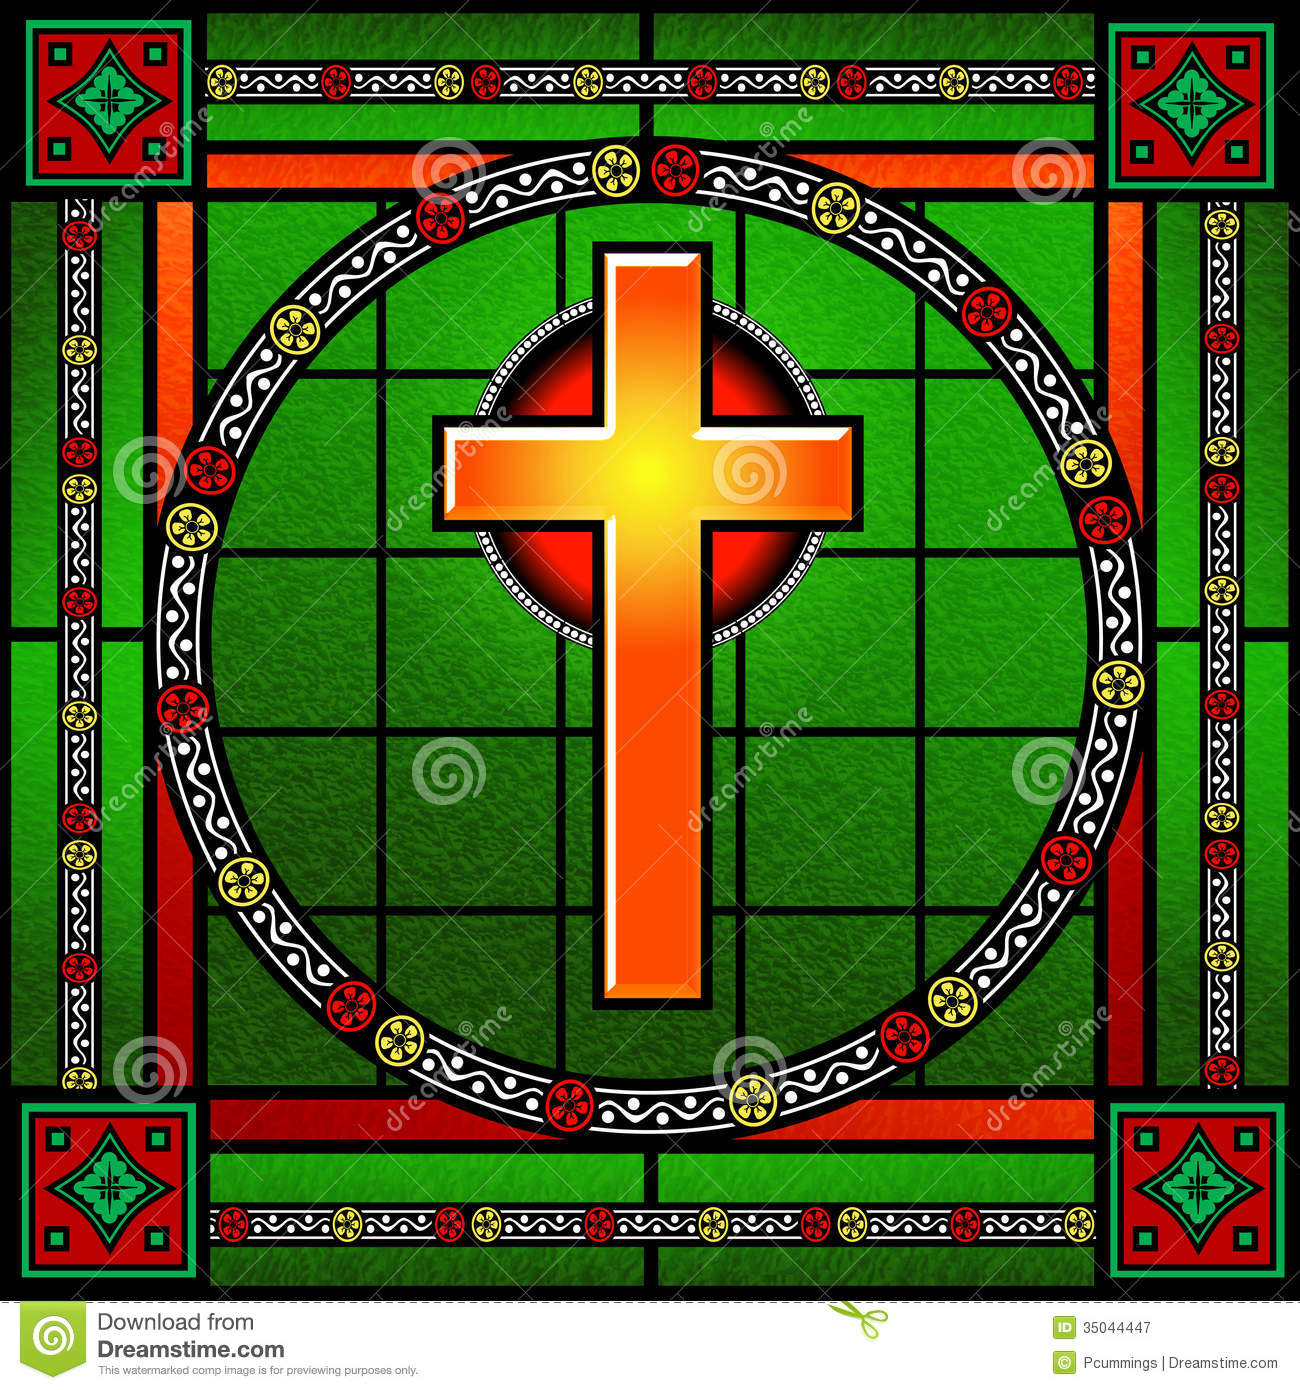 Golden cross stained glass window royalty free stock for Decorative stained glass windows